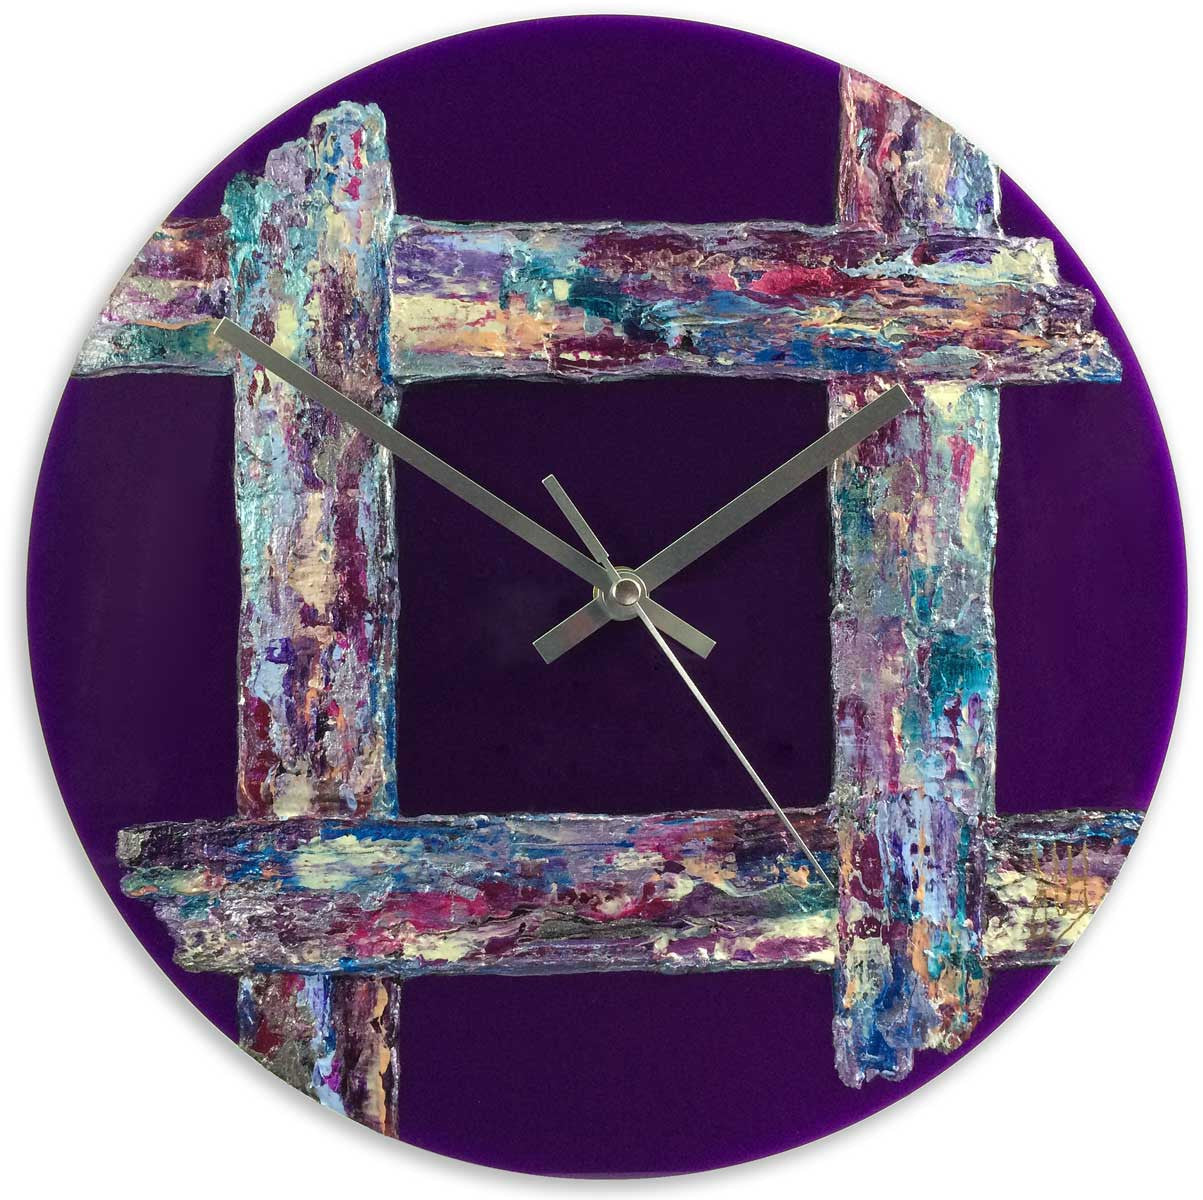 Round 30cm abstract wall clock on purple plexiglass - JLH30ROU3